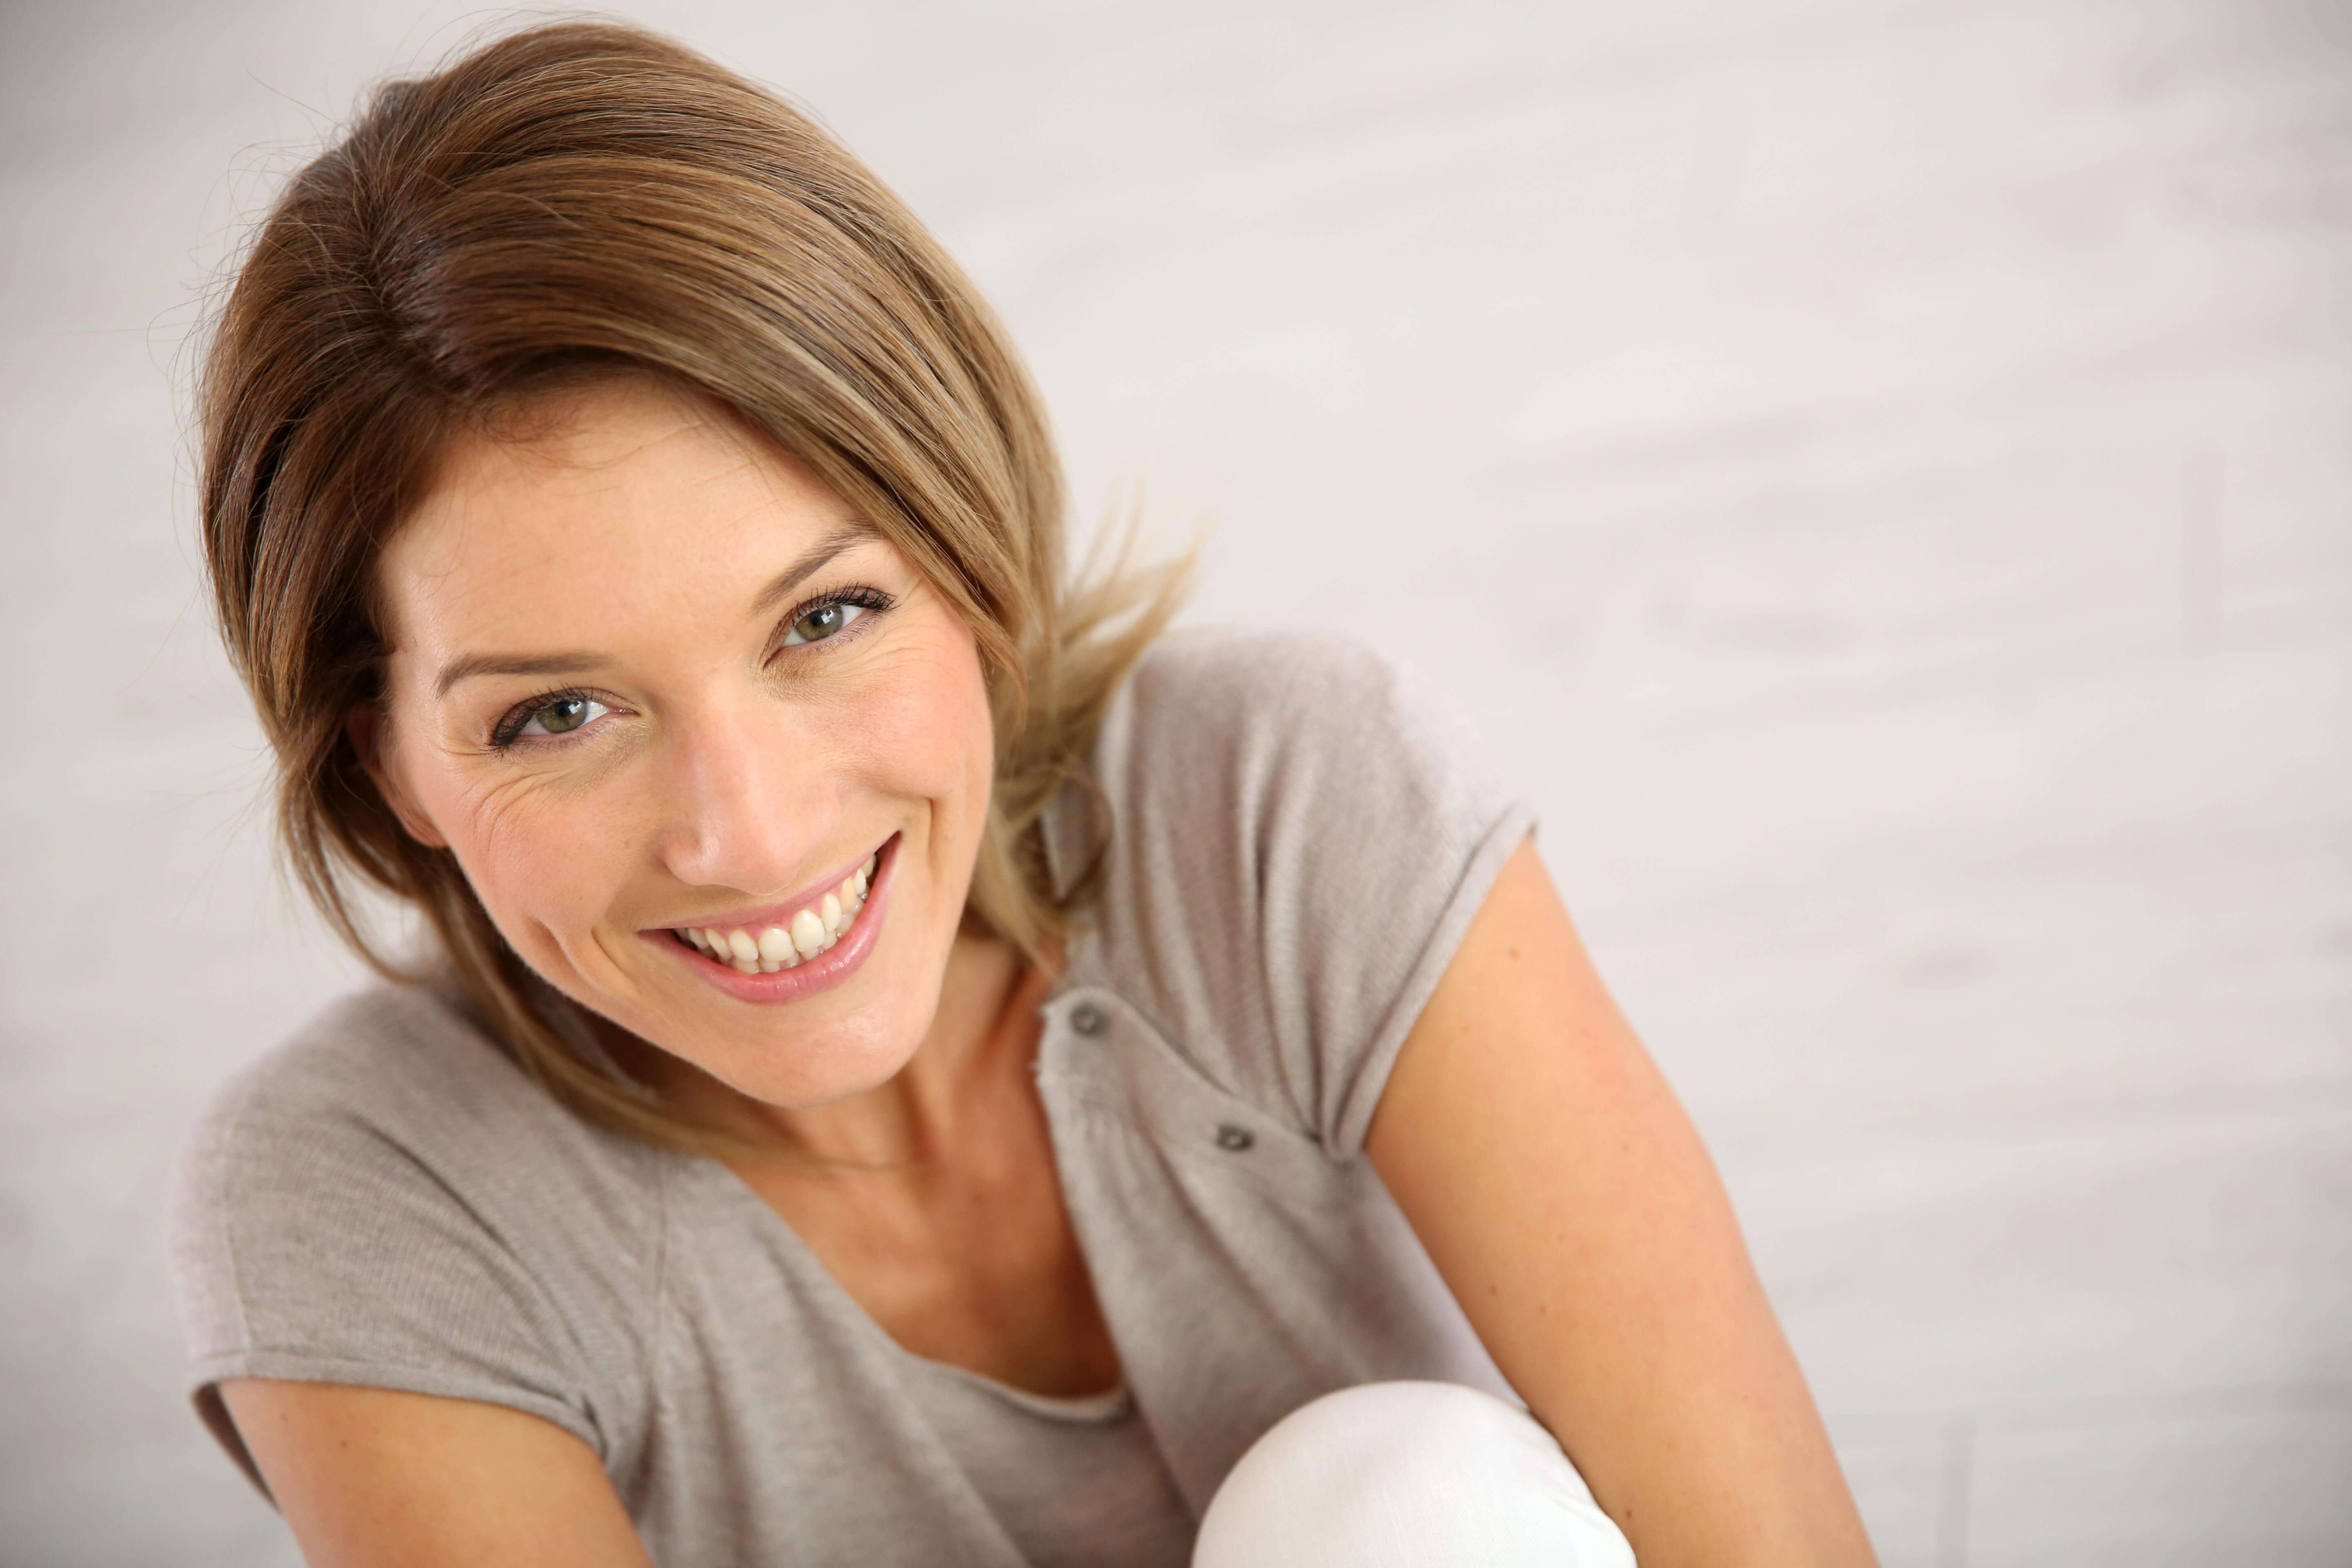 Portrait of woman smiling over shoulder - Stock Photo